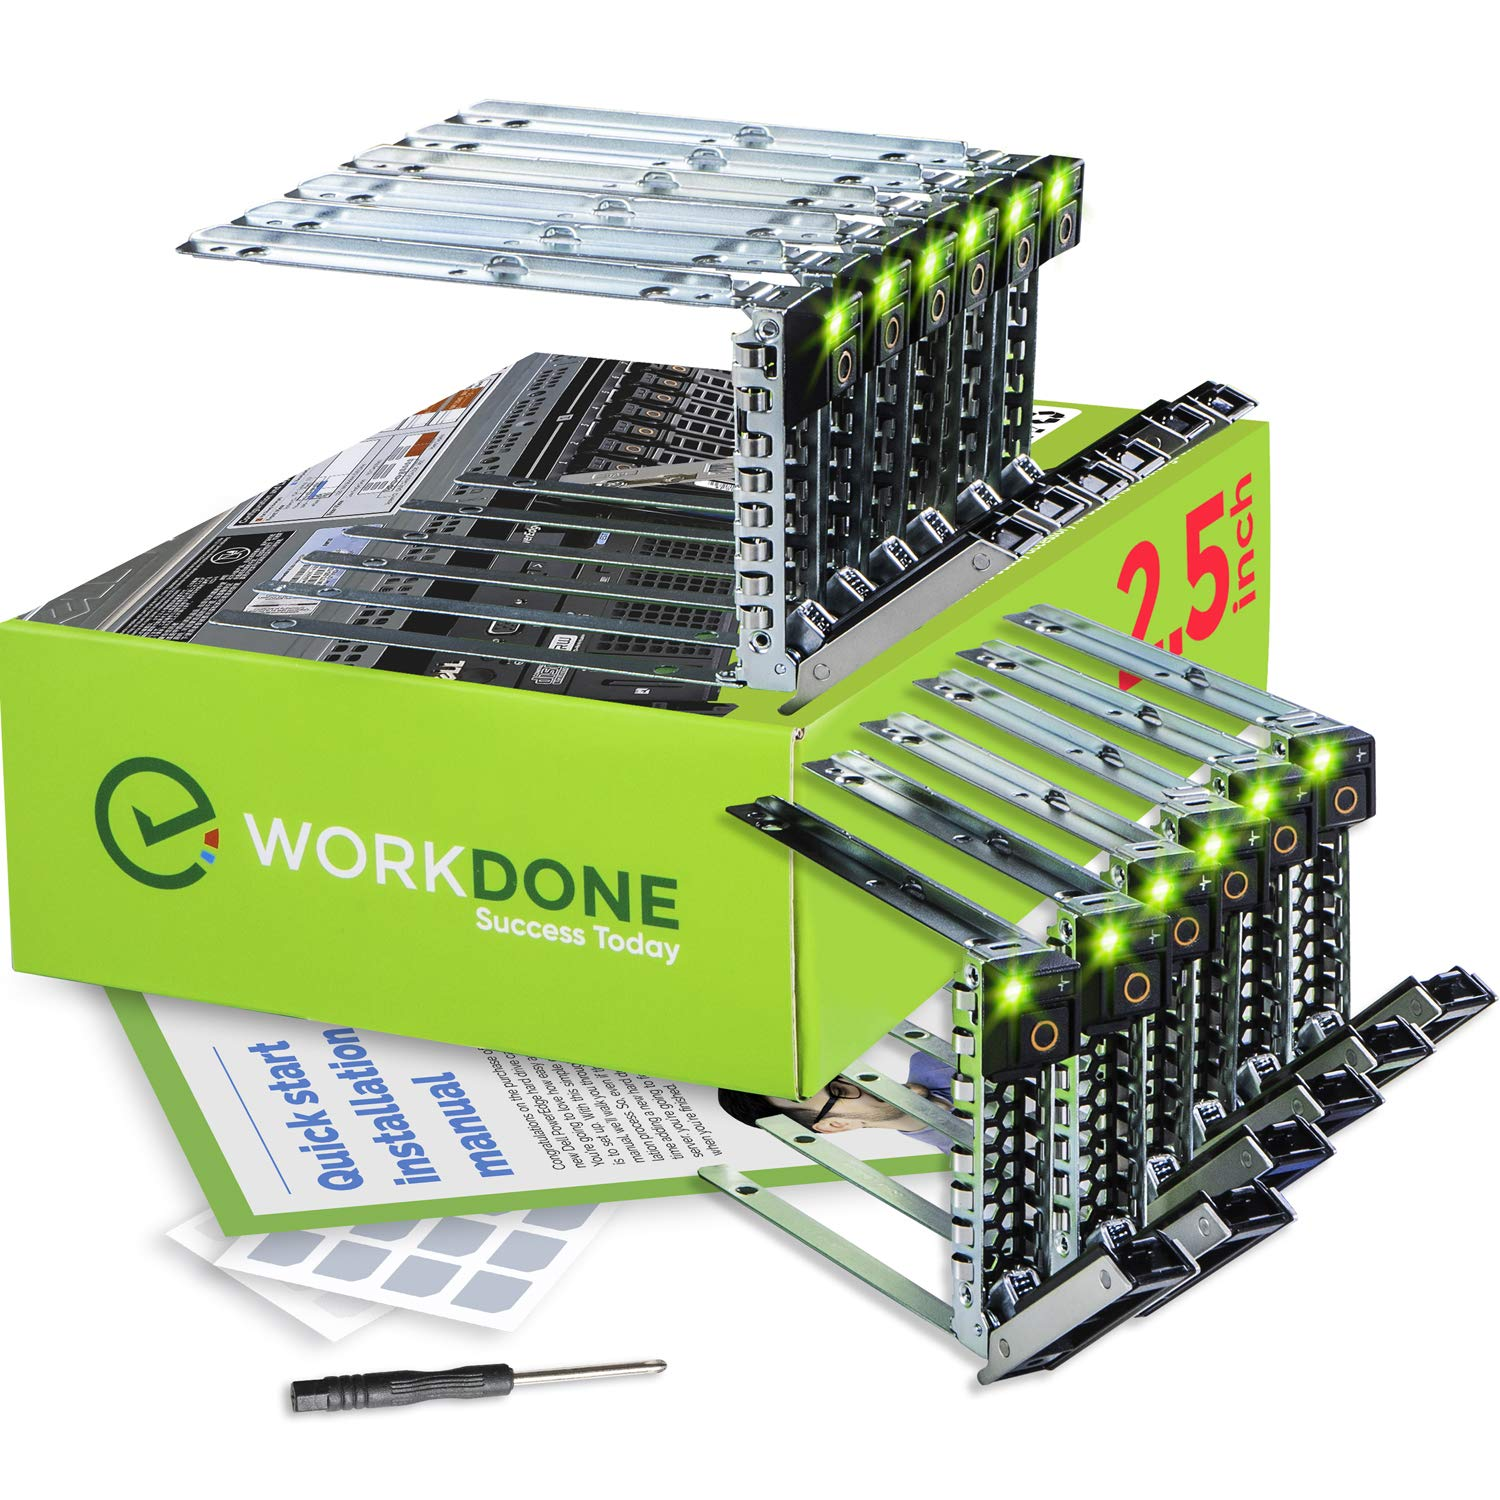 WorkDone 12-Pack 2.5-inch R440 R640 R740 R740xd R840 R940 R6415 XC Drive Caddy - Bright LED Tray - Compatible for 14th Gen Dell PowerEdge Servers - Sticker Labels - Setup Manual - Selected Screws